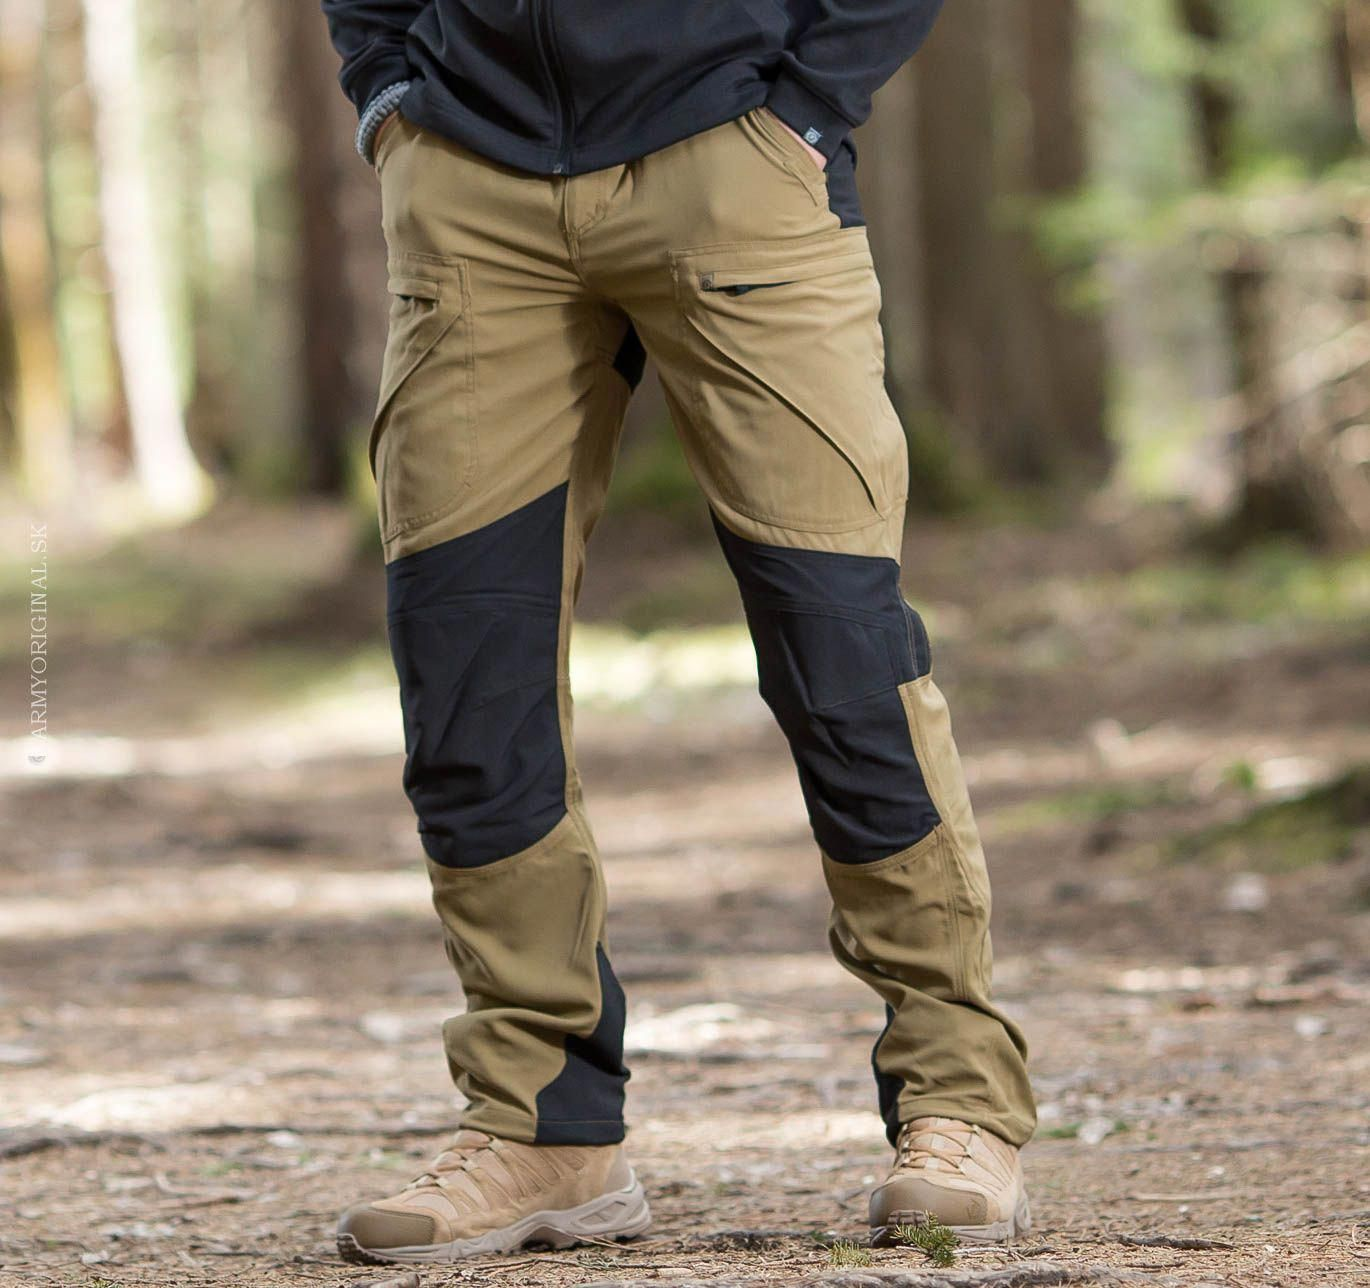 Haglofs Rugged Mountain Pant Mens Fashion Rugged Outdoor Outfit Tactical Clothing